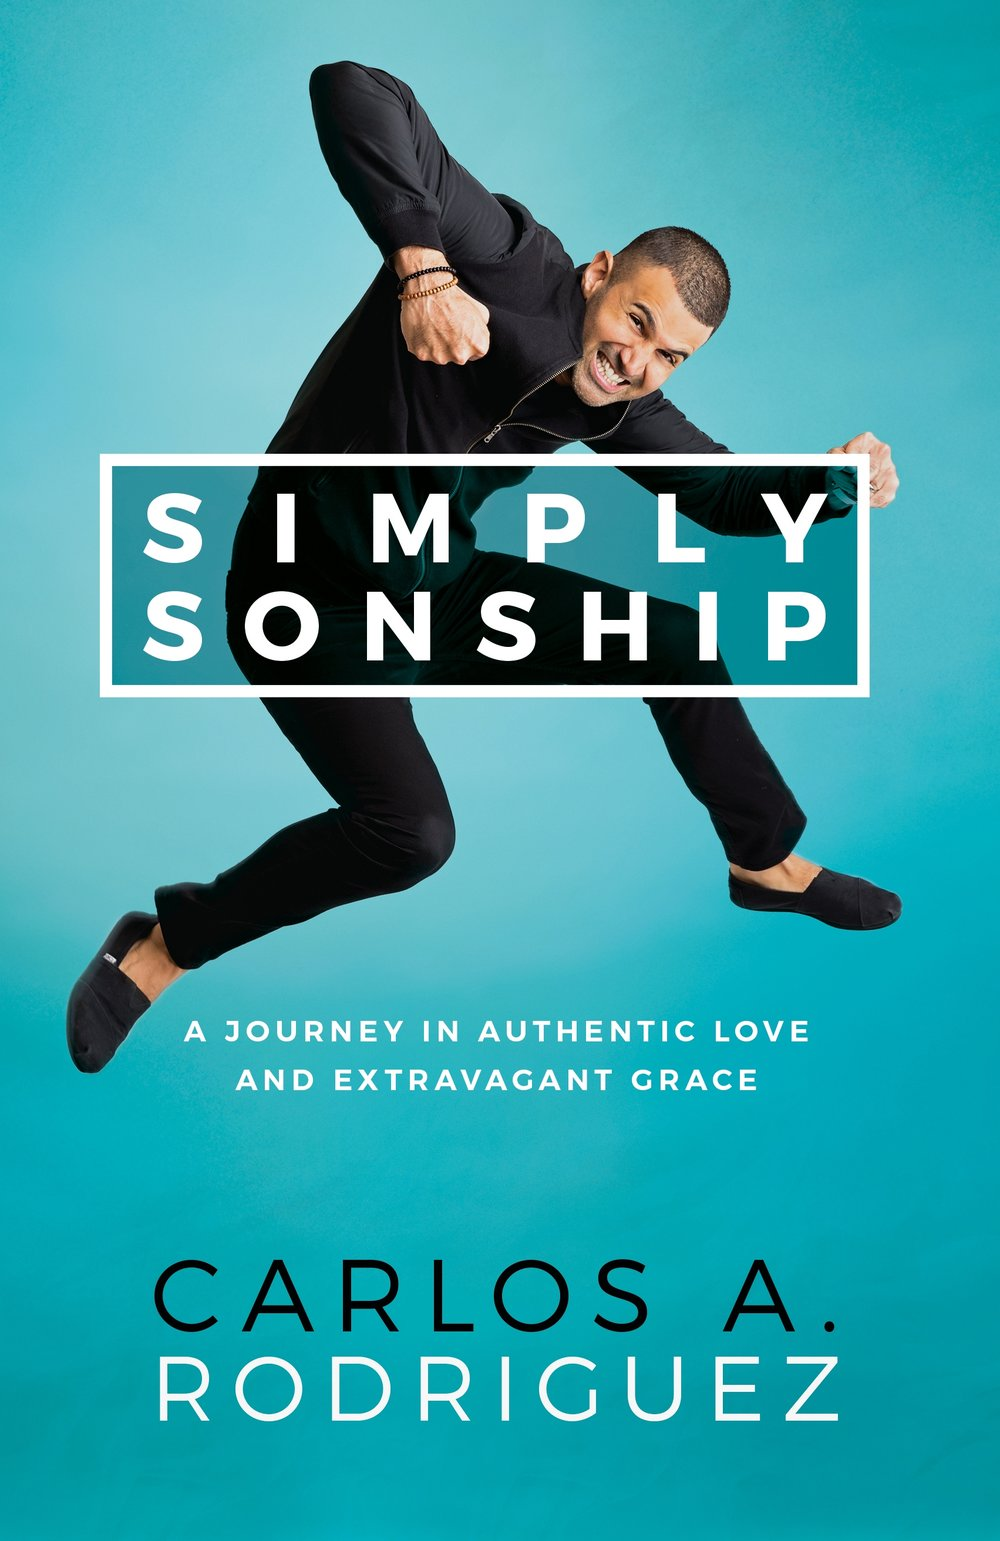 <strong>Simply Sonship</strong><br>Carlos A. Rodriguez